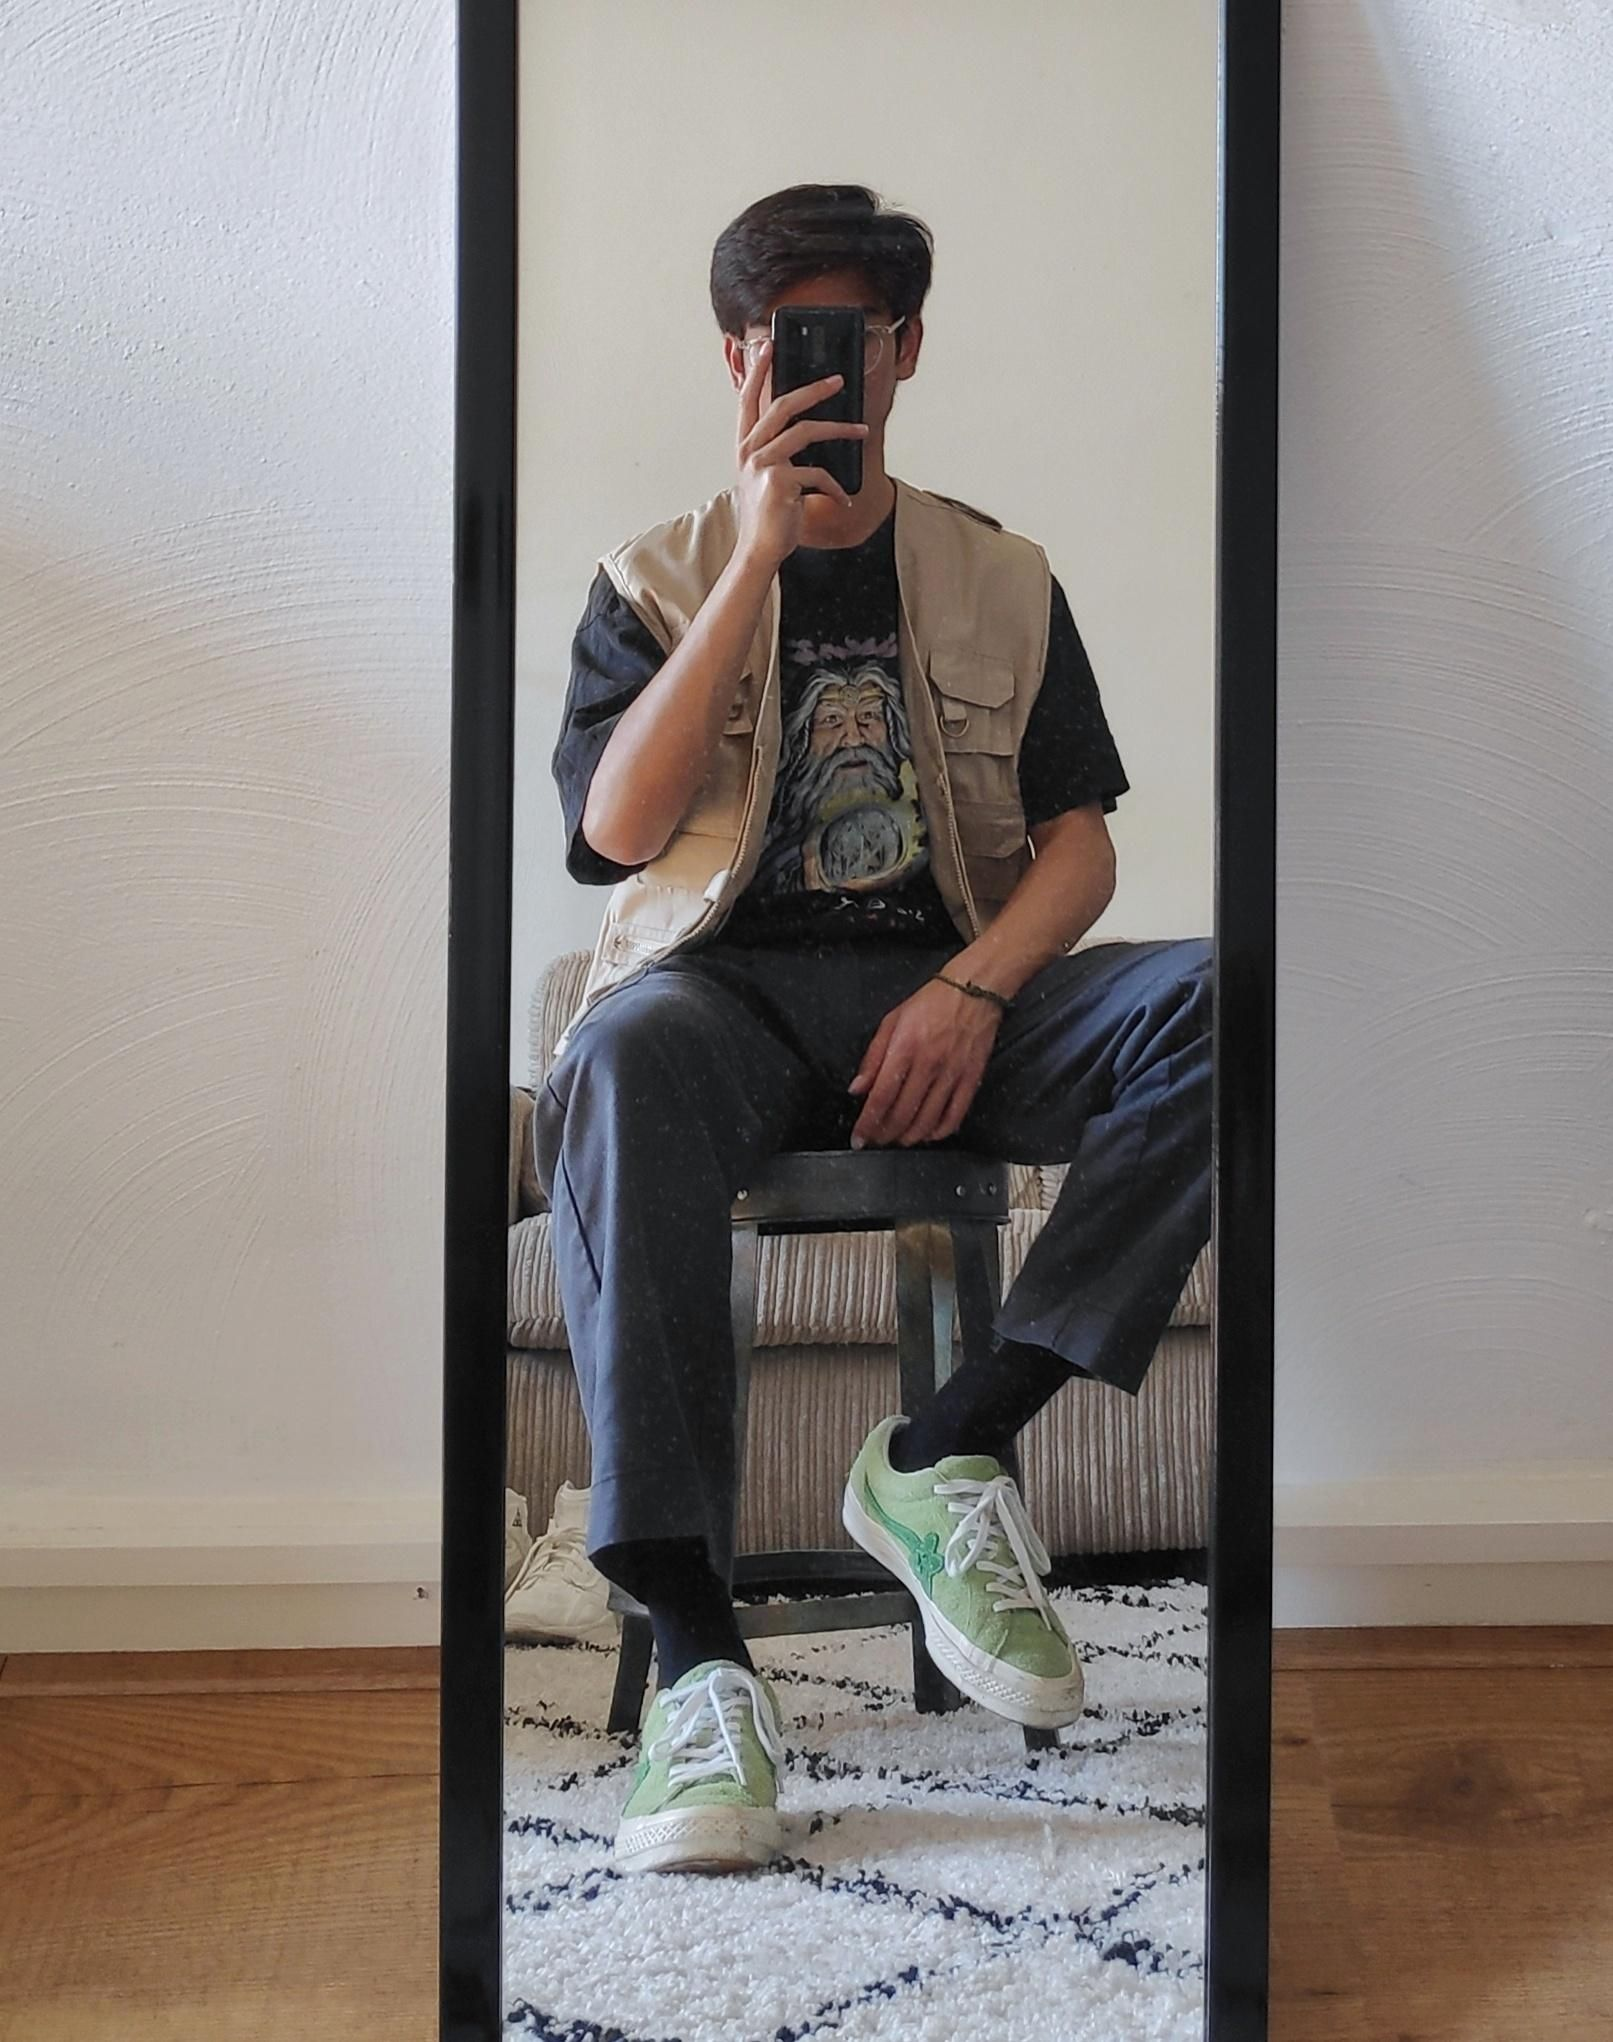 [WDYWT] fishing with merlin day   Military outfit, Modern